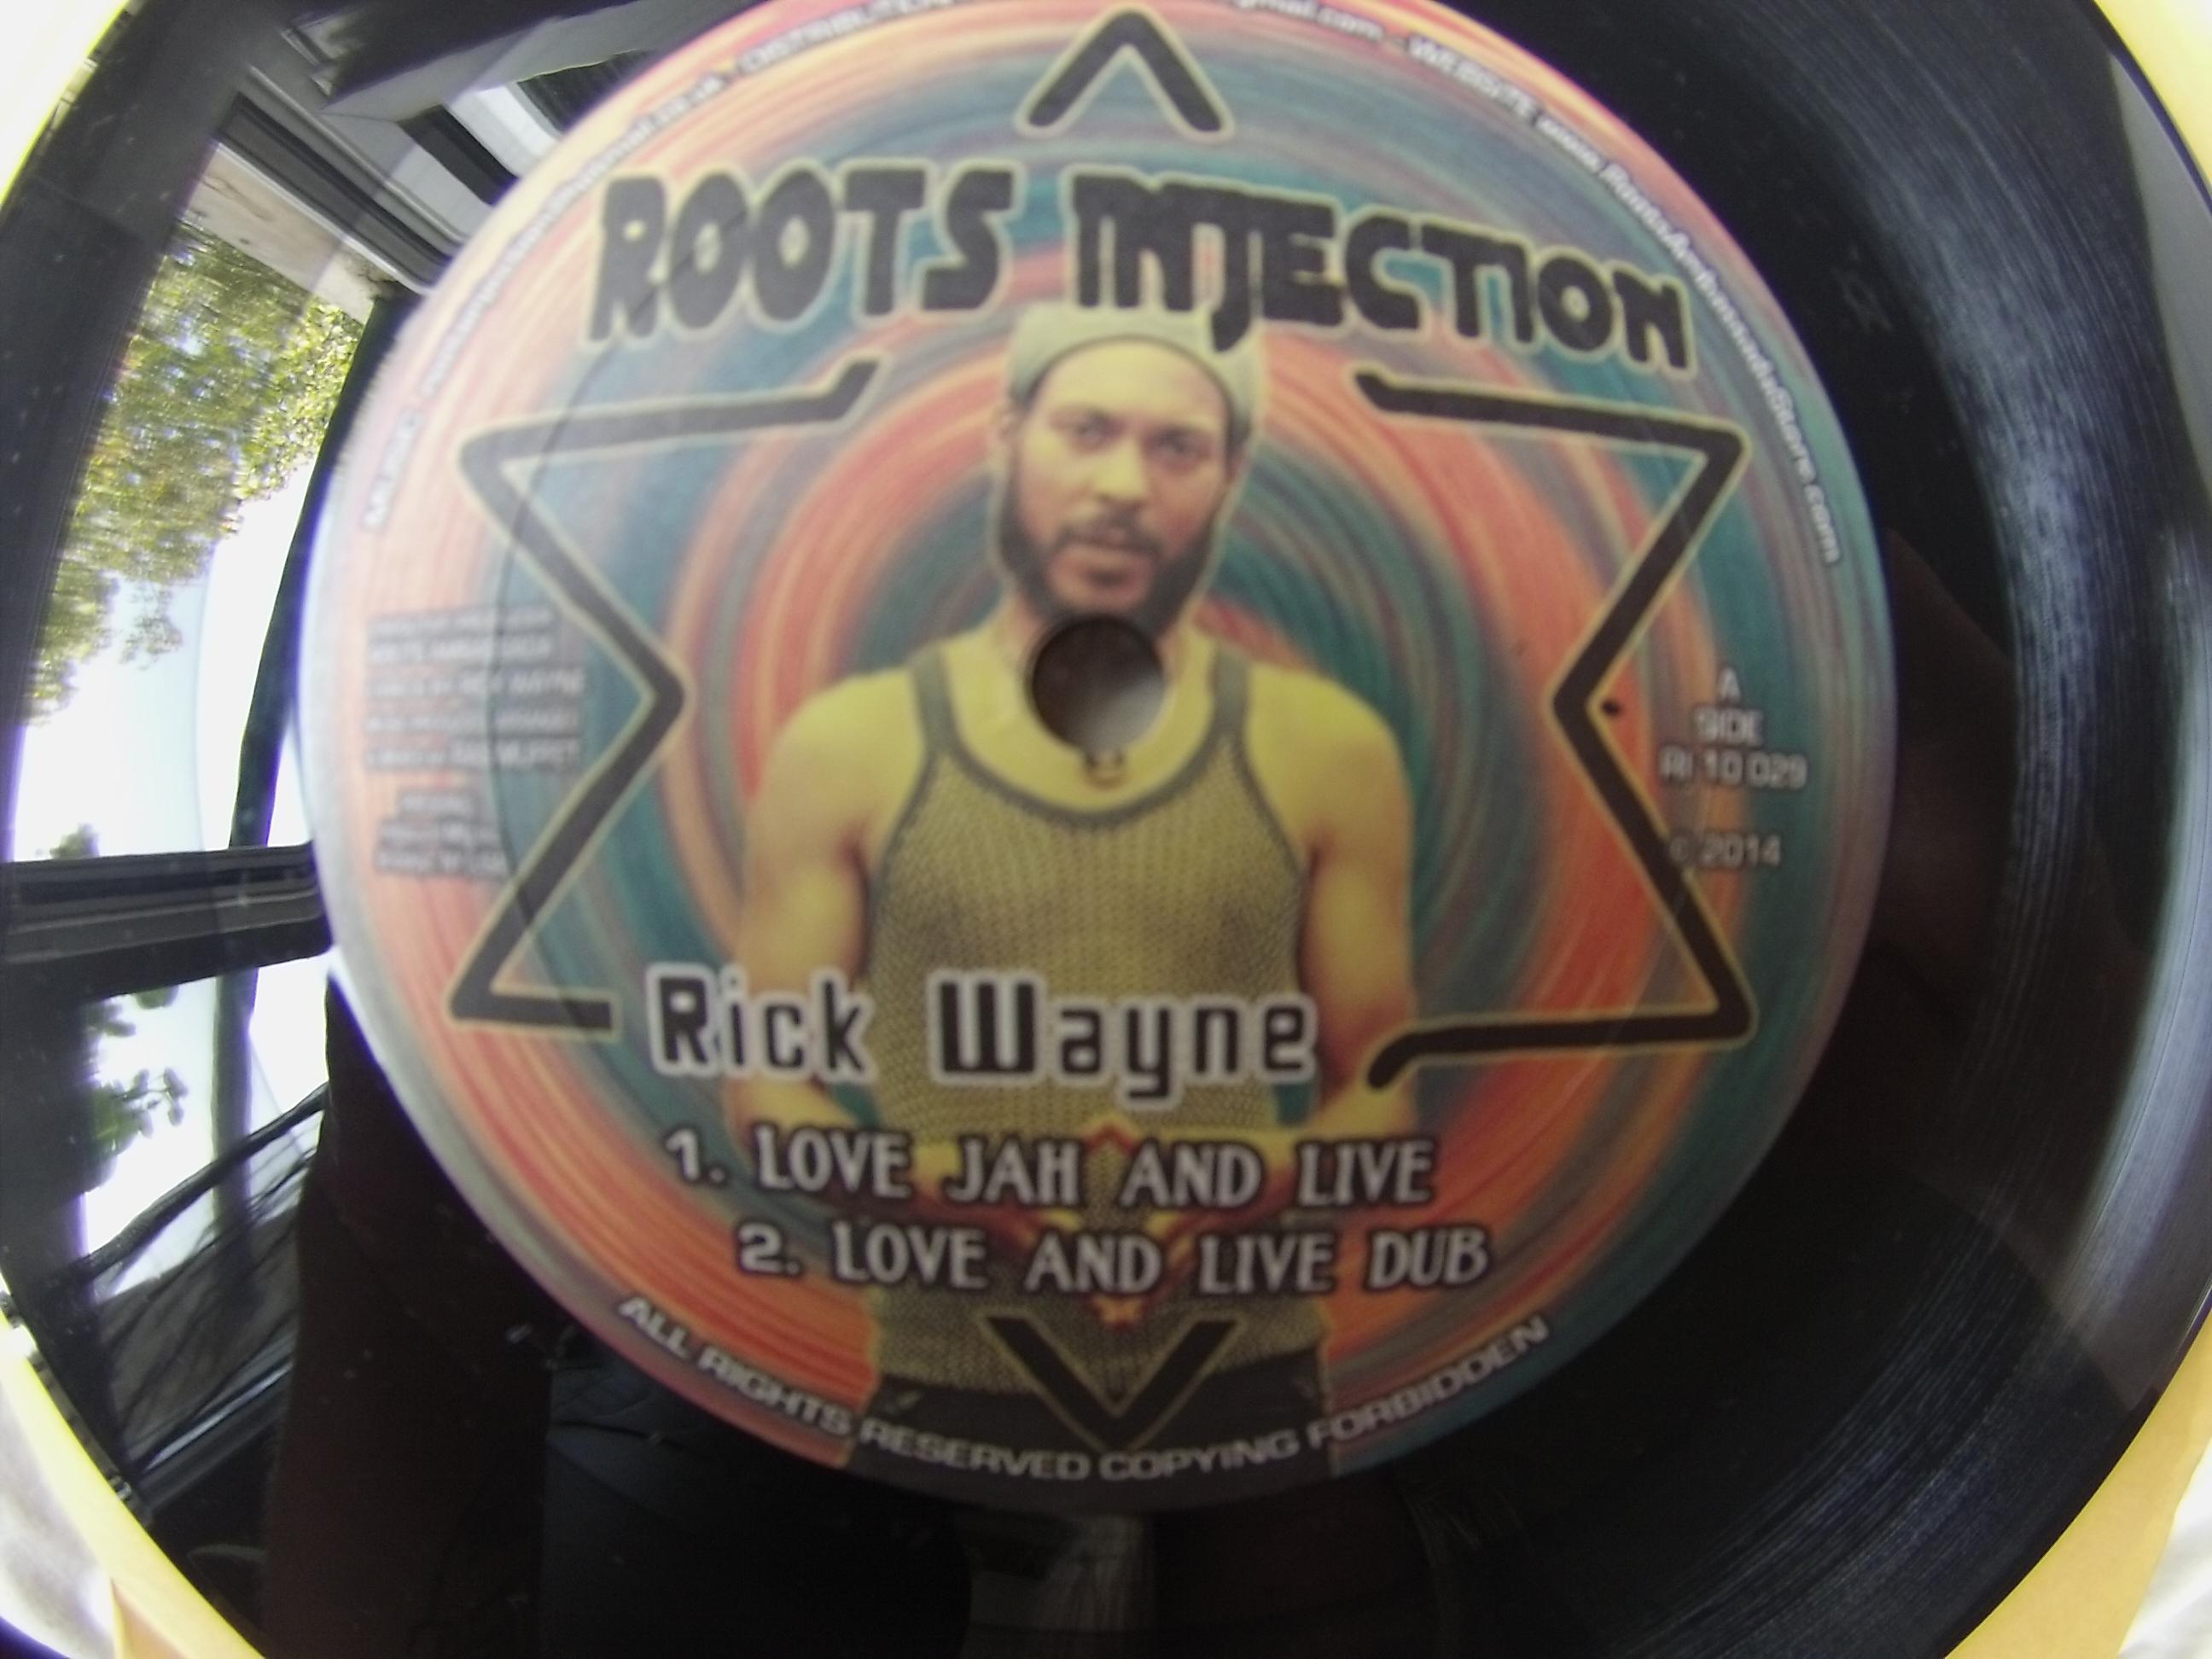 RICK WAYNE - Love jah and live (Roots injection ) 10""